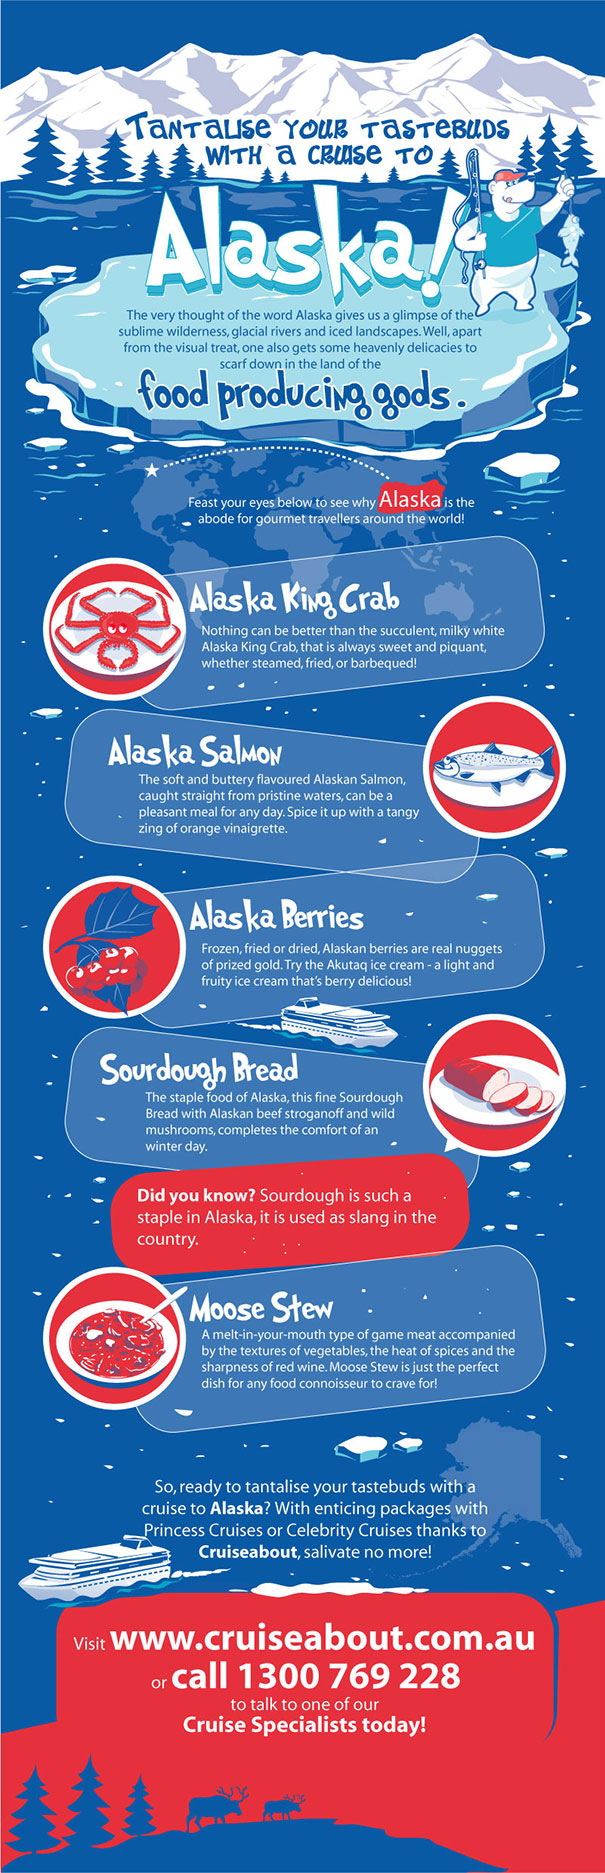 Tantalise your taste buds with a Cruise to Alaska